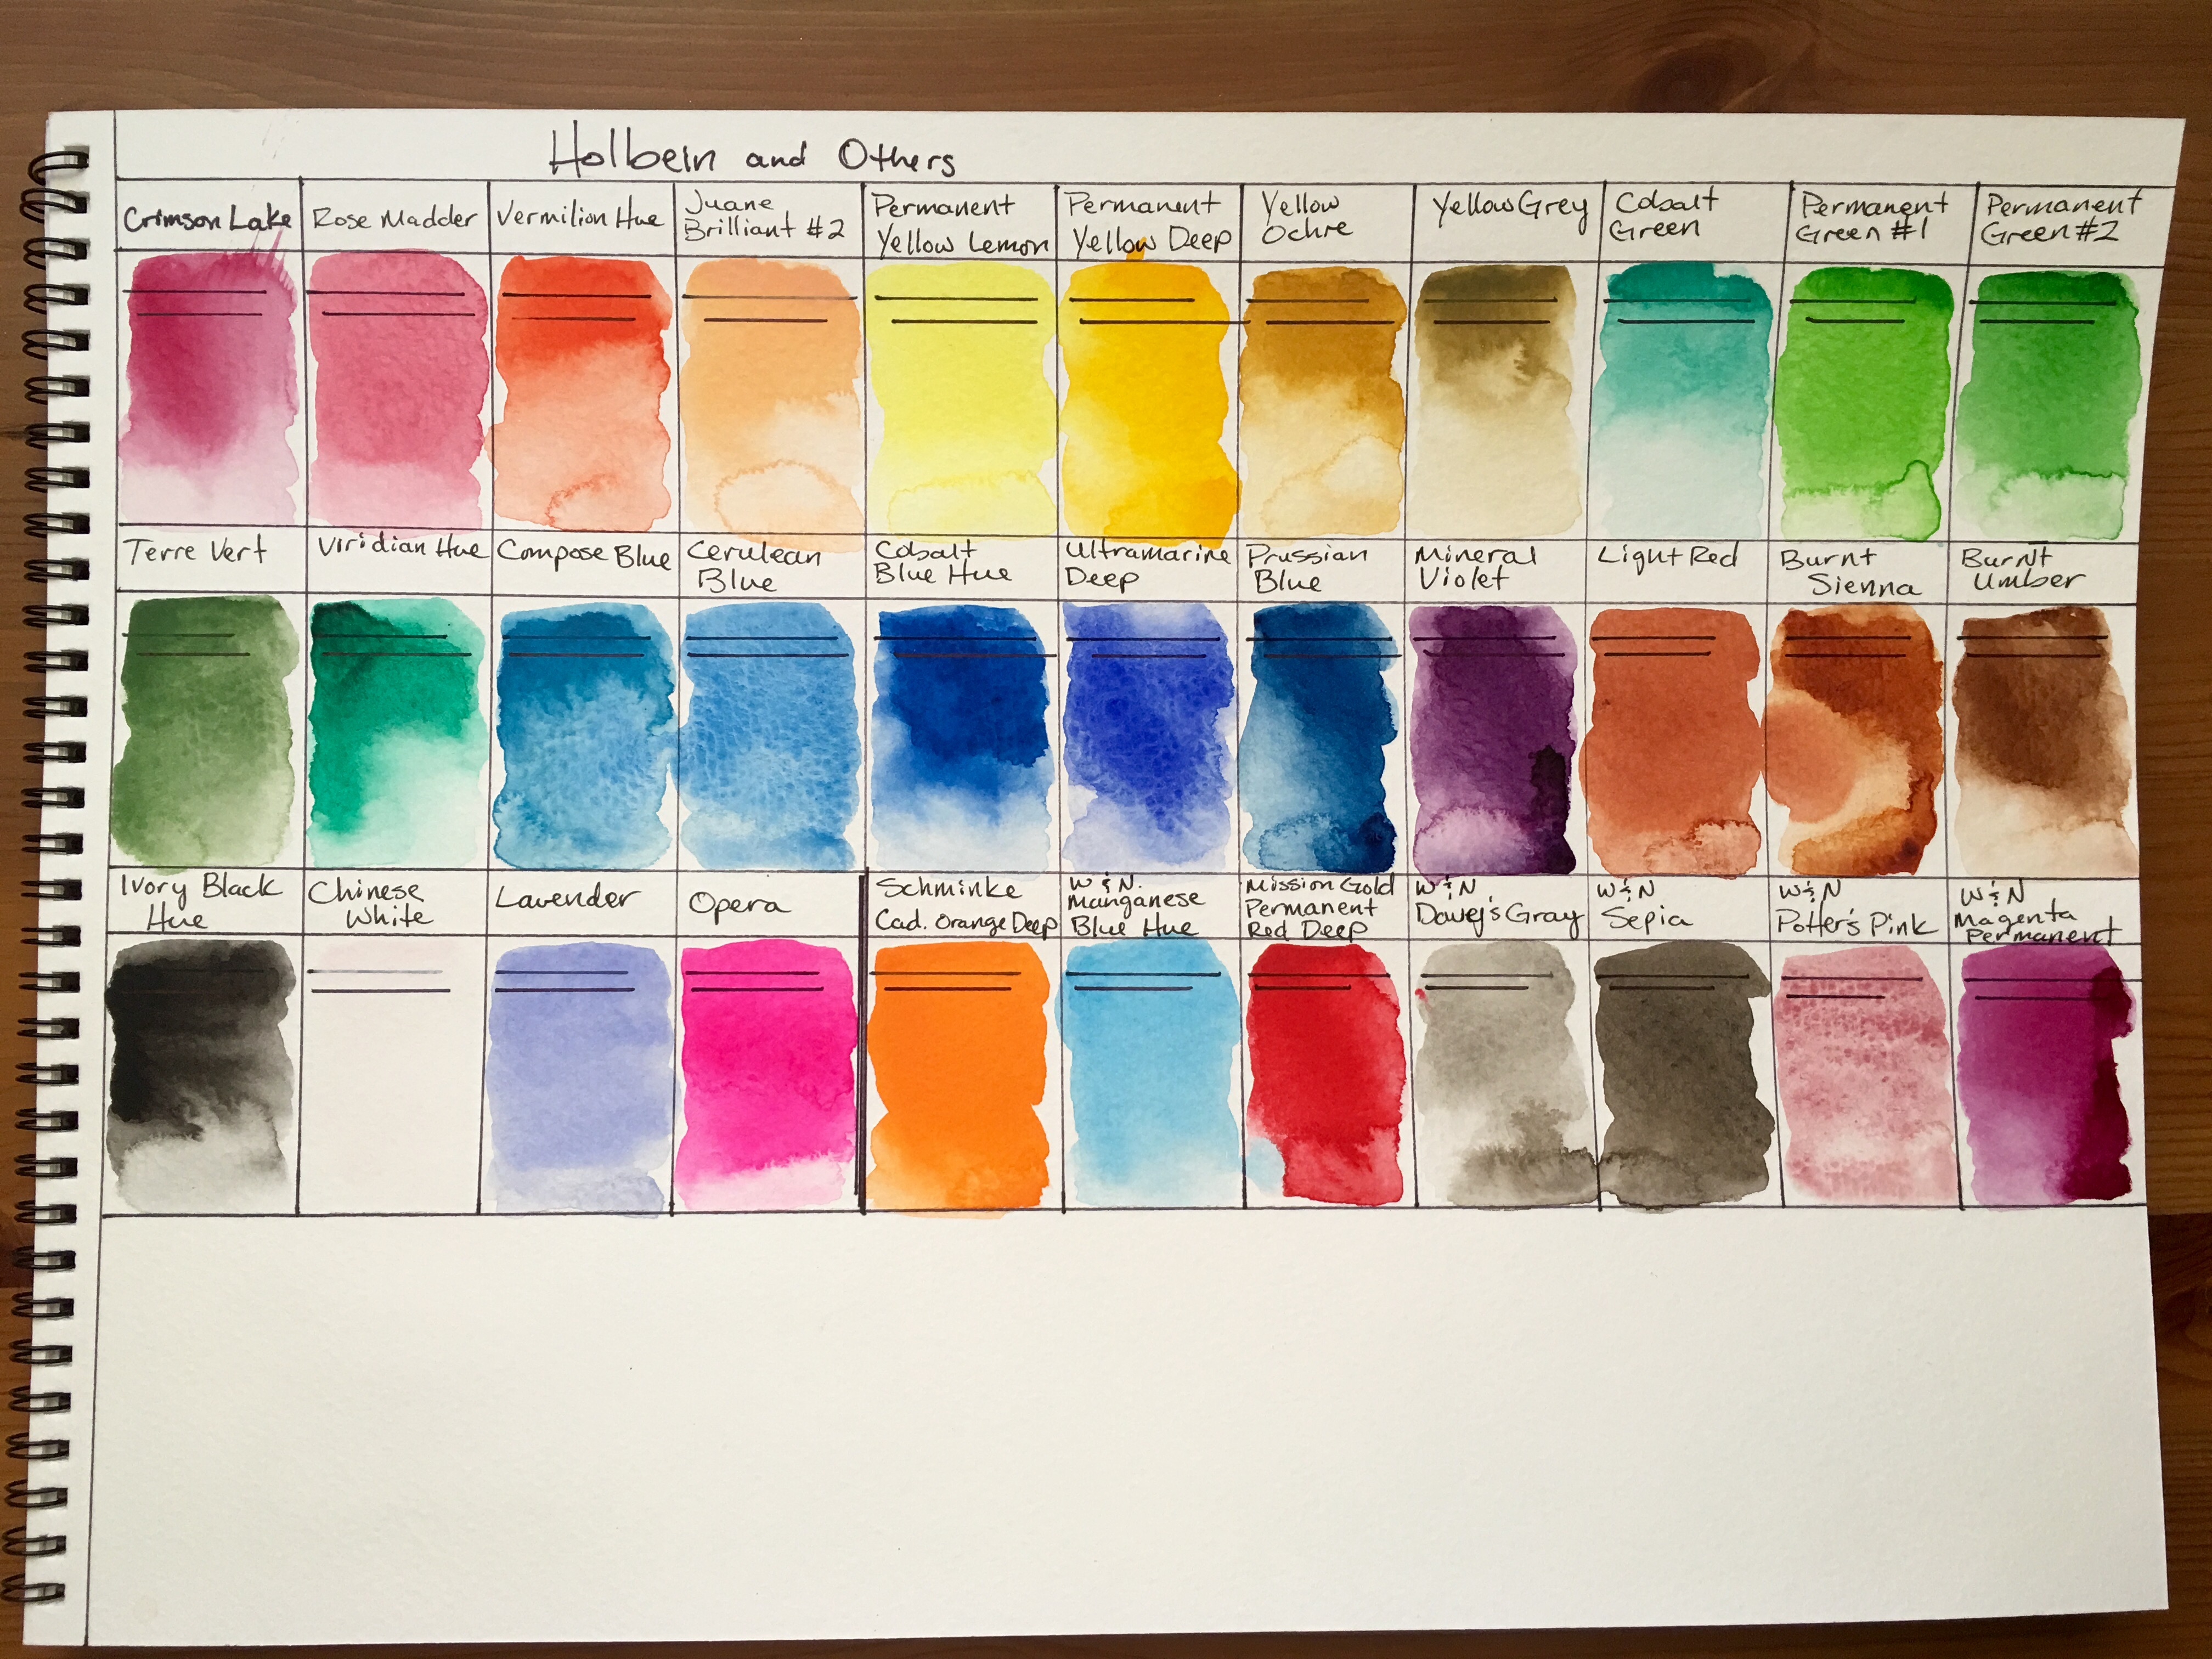 Chart of hair colors